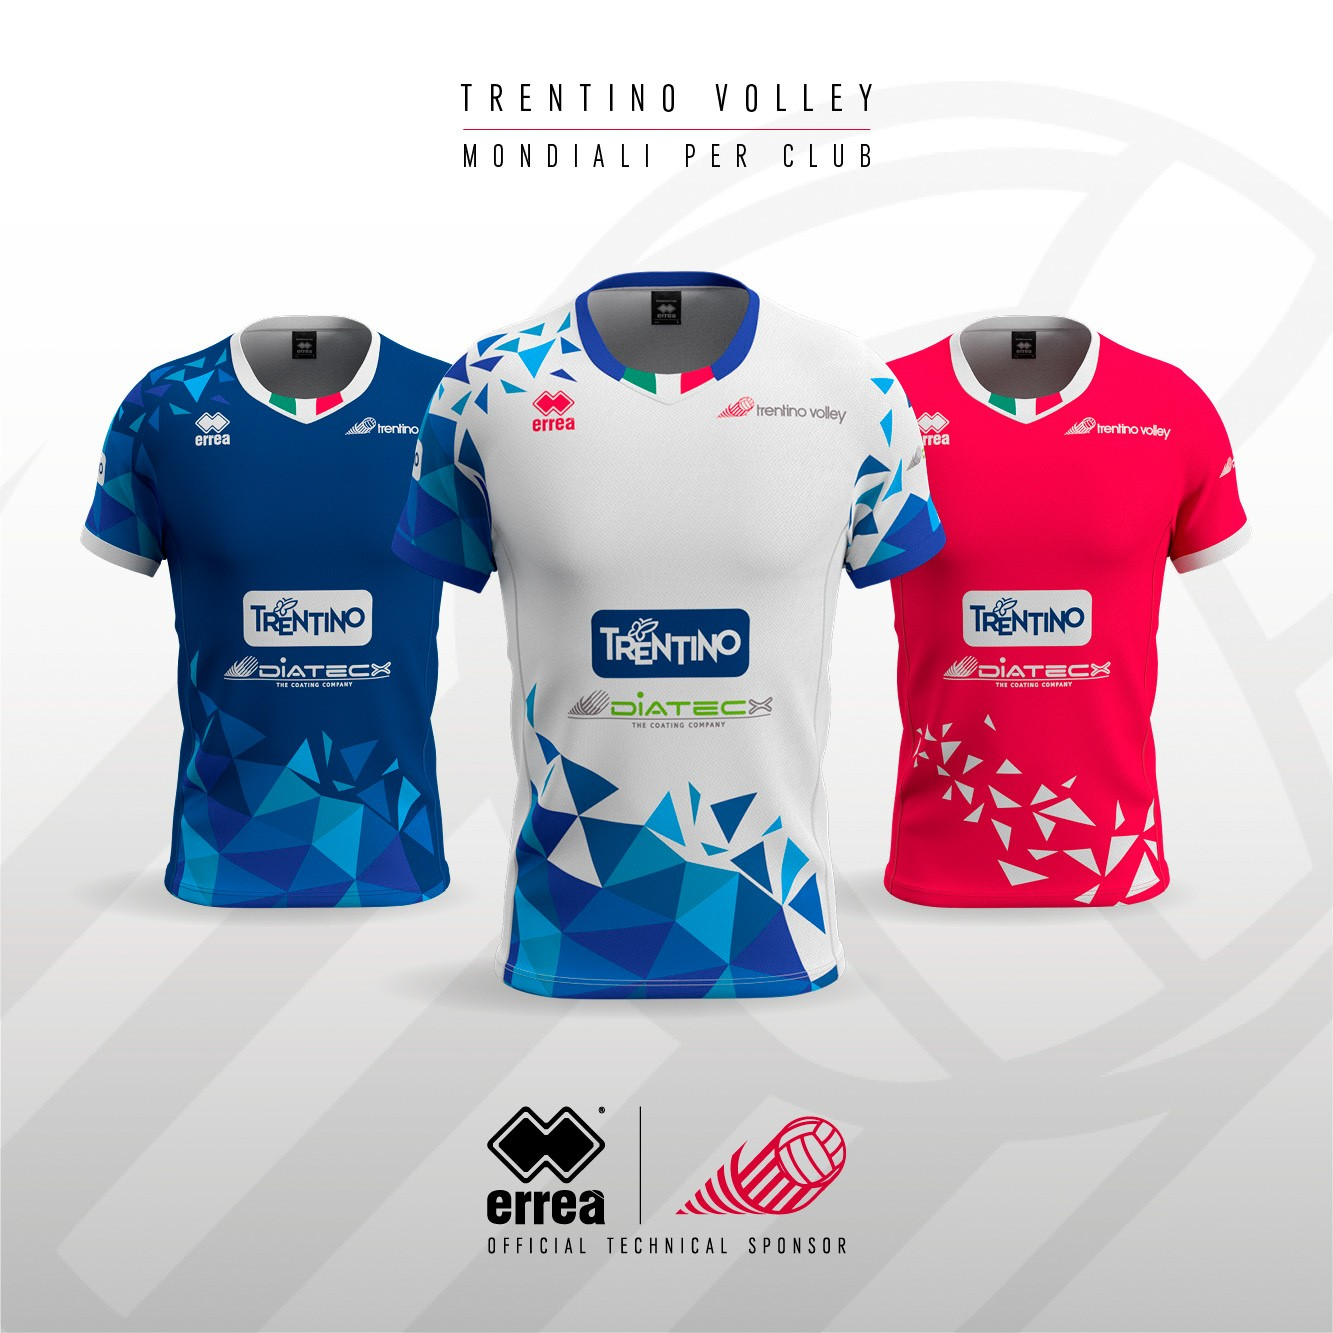 Erreà presents Trentino Volley's new kits for the 2018 Club World Championship!